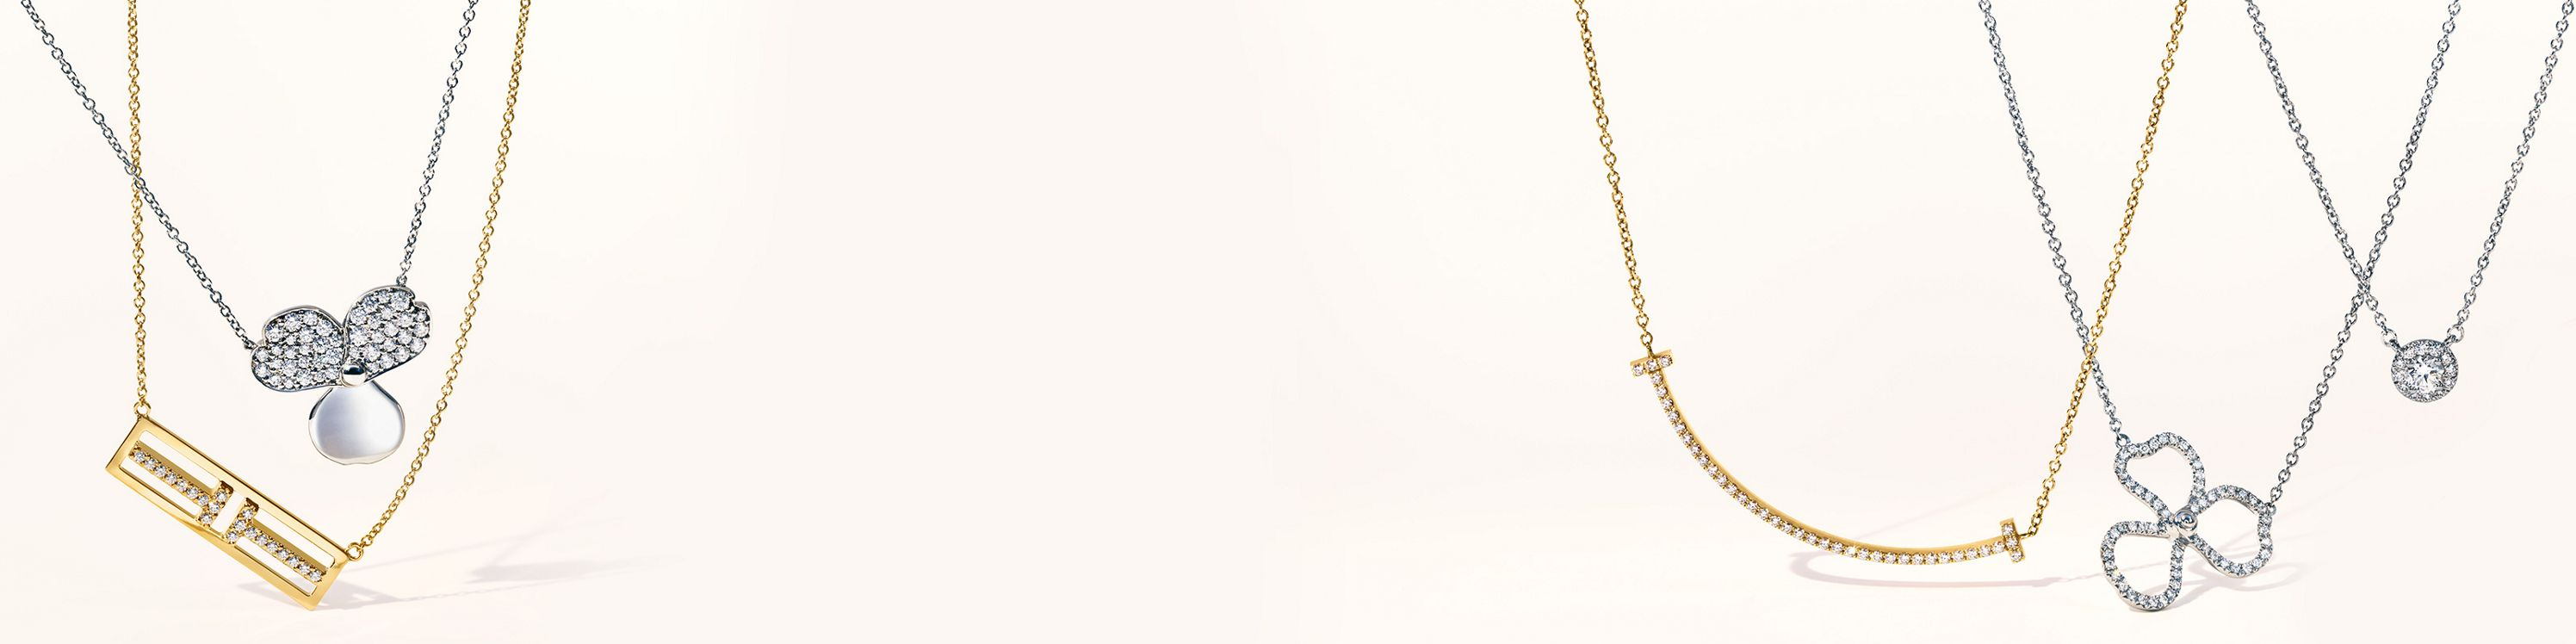 b02cf83d0 Necklaces & Pendants | Tiffany & Co.